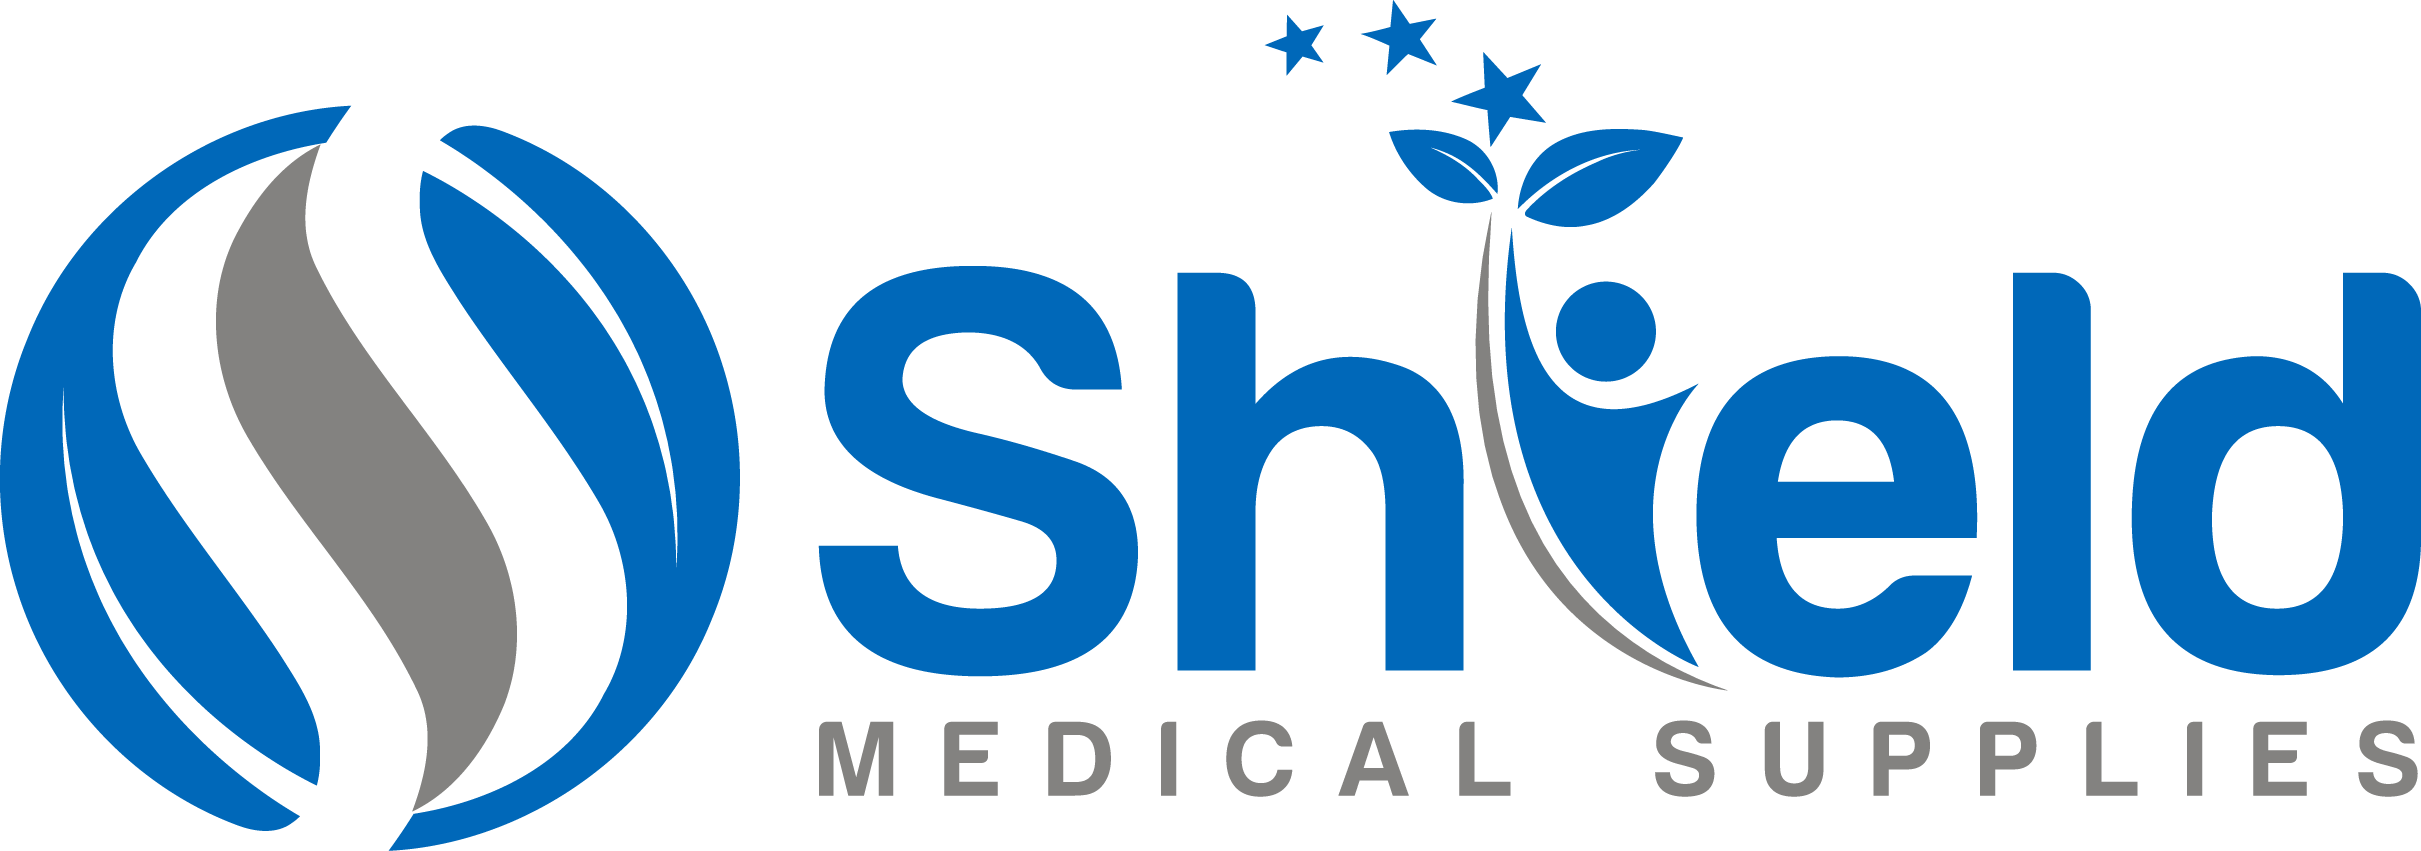 Shield Medical Supplies